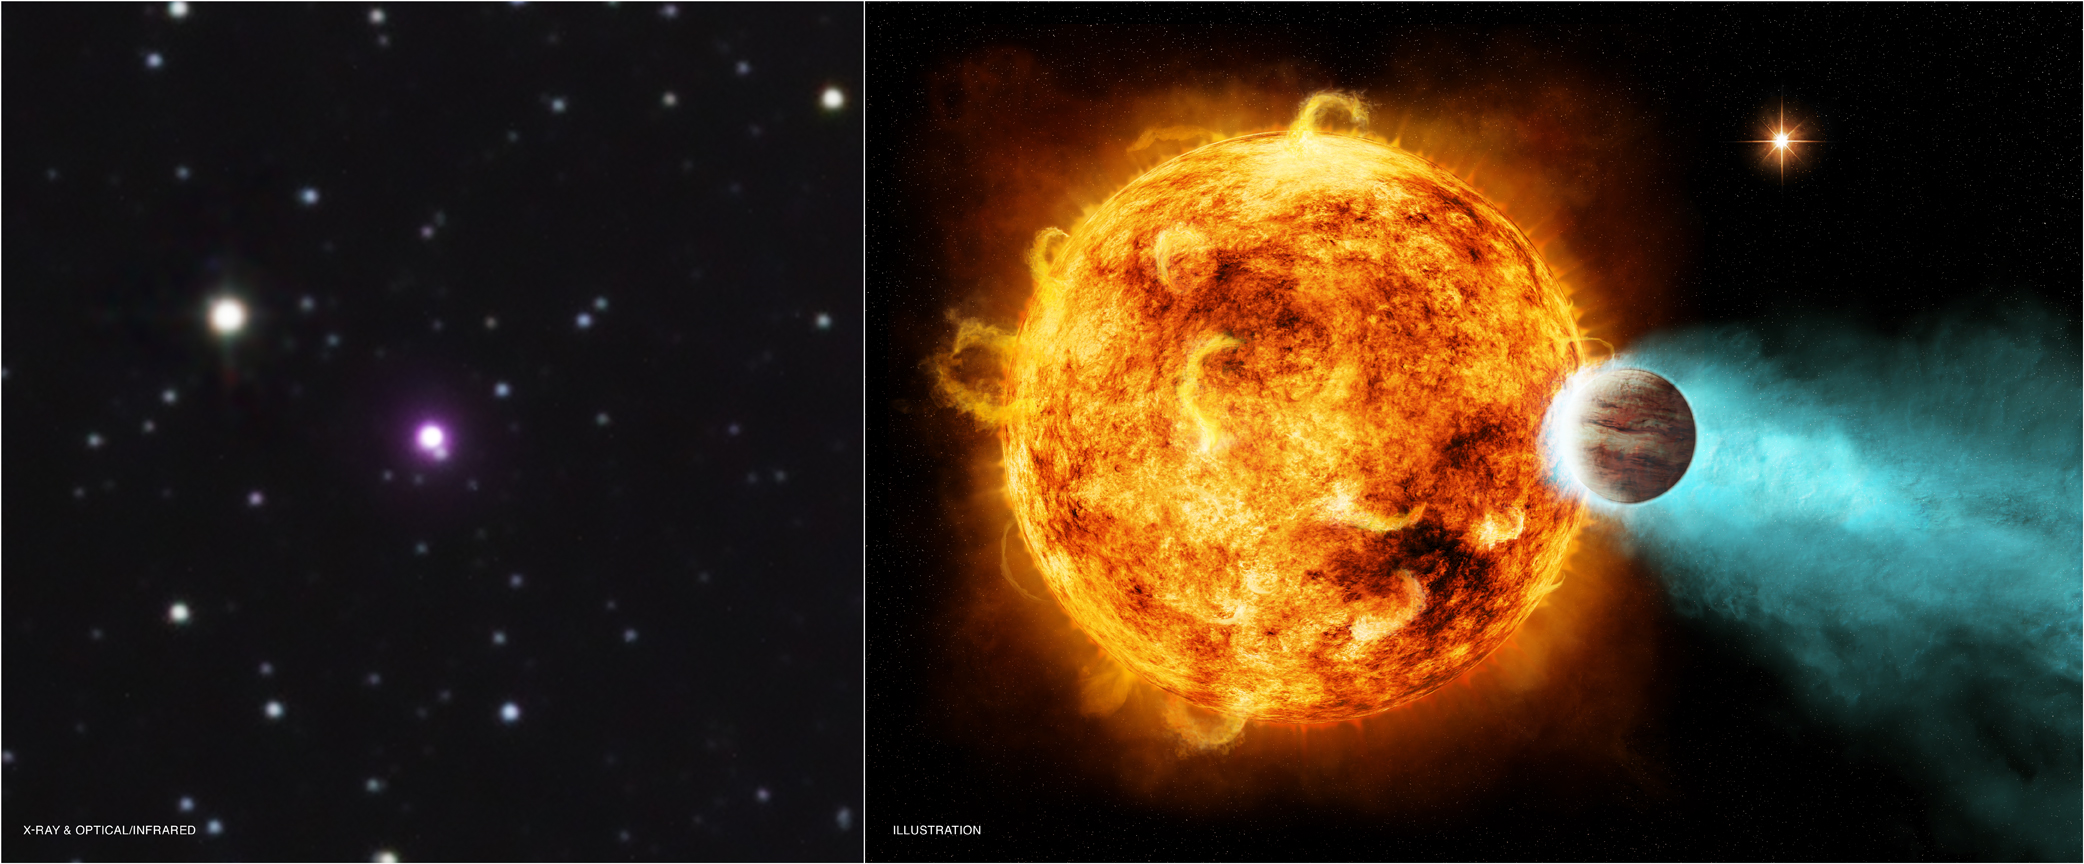 CoRoT-2a: Star Blasts Planet With X-rays